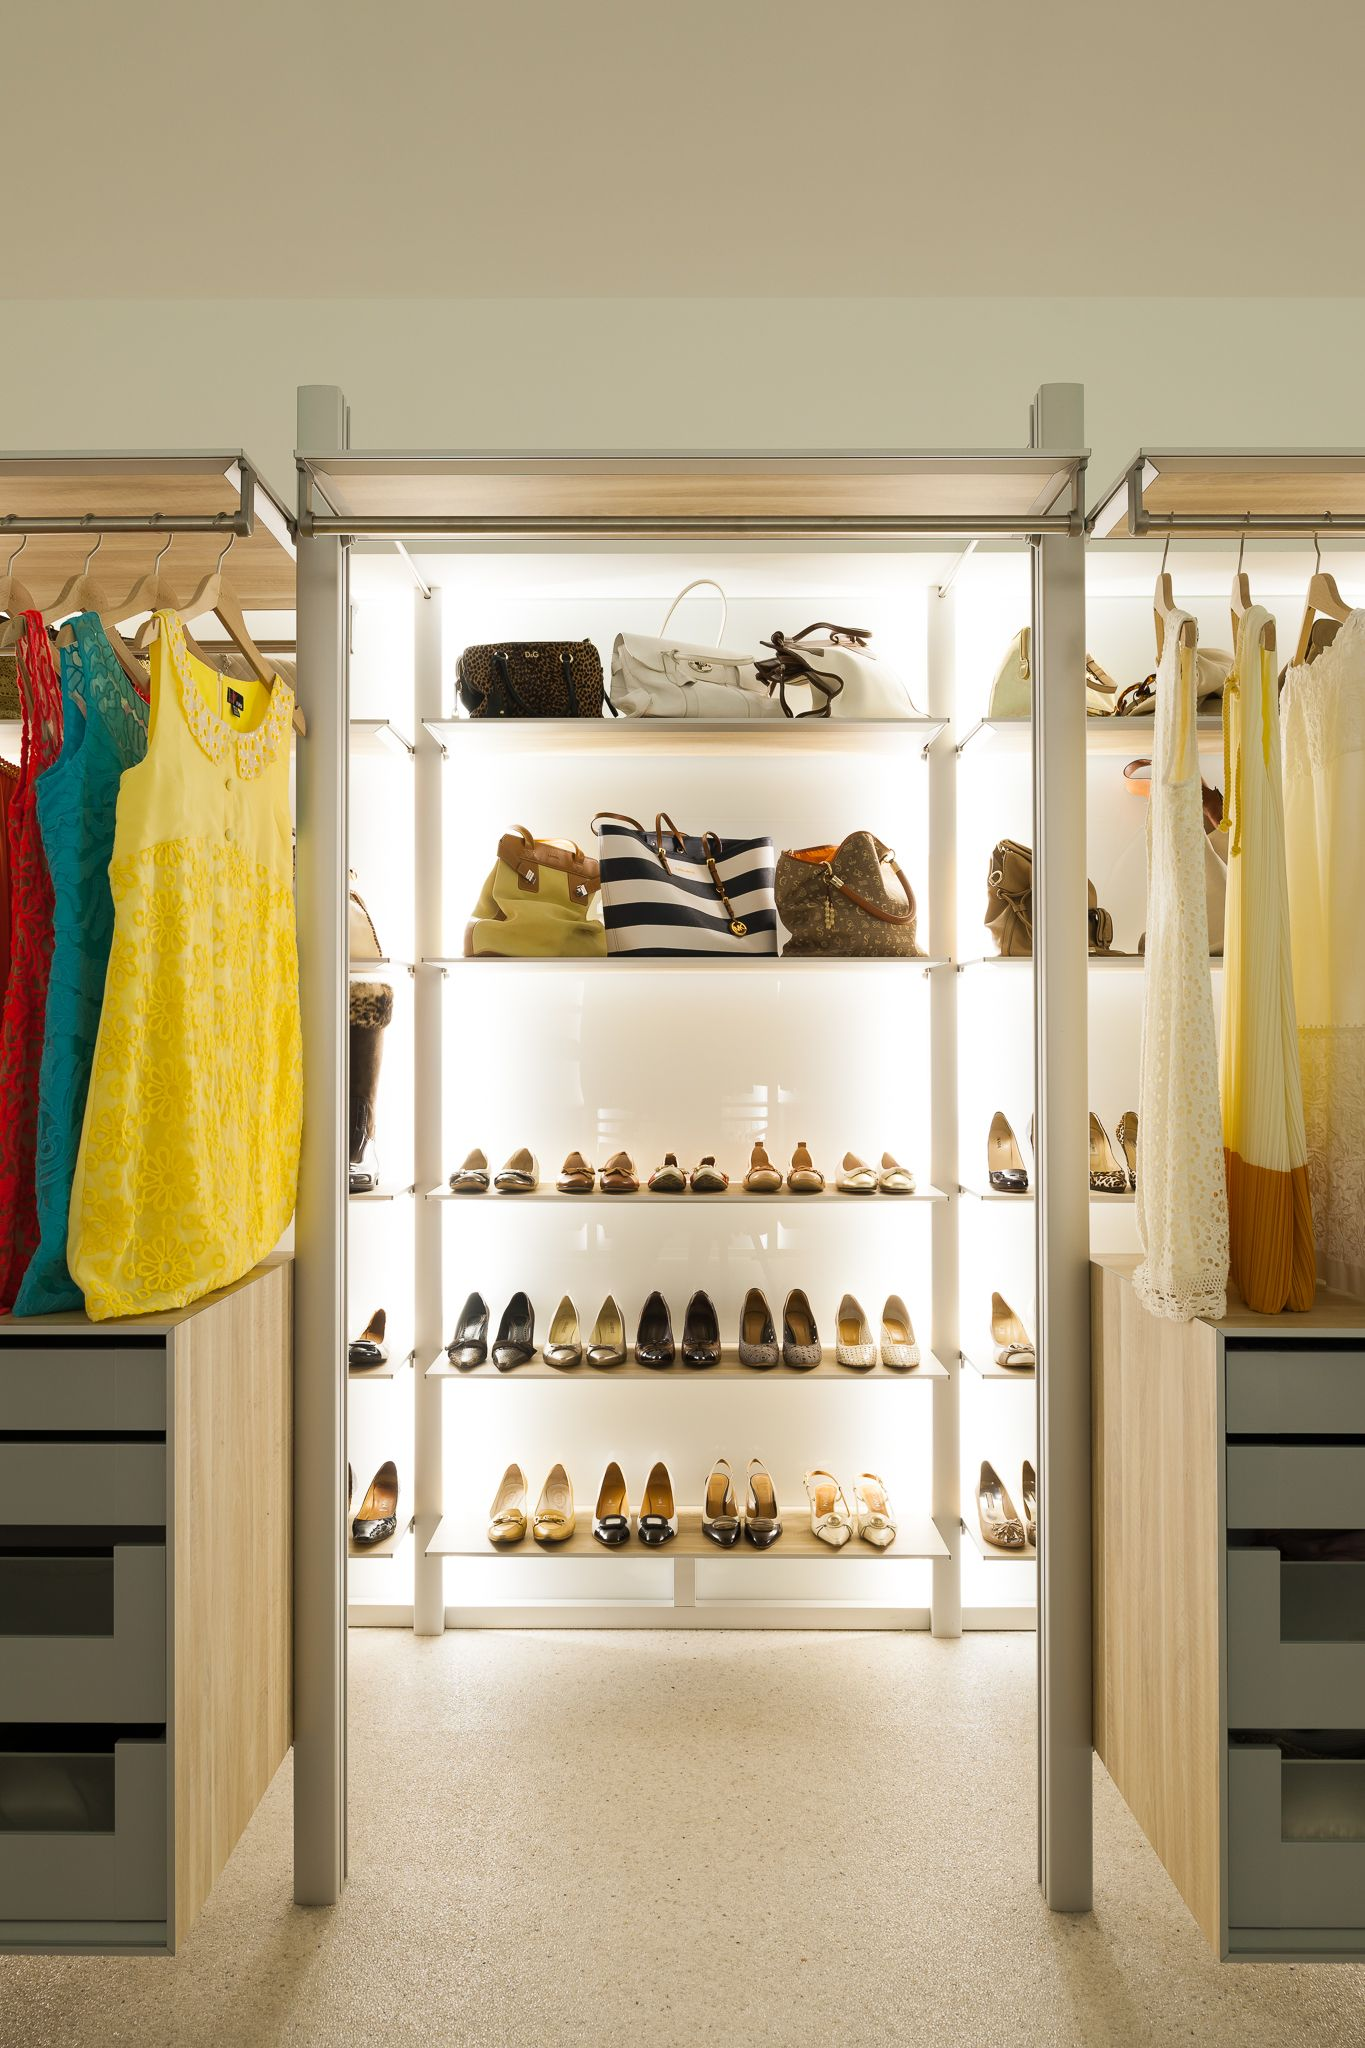 wire walk in closet ideas. How To Store Shoes, Pumps And Handbags In A Modern Walk-in Closet Wire Walk Ideas N